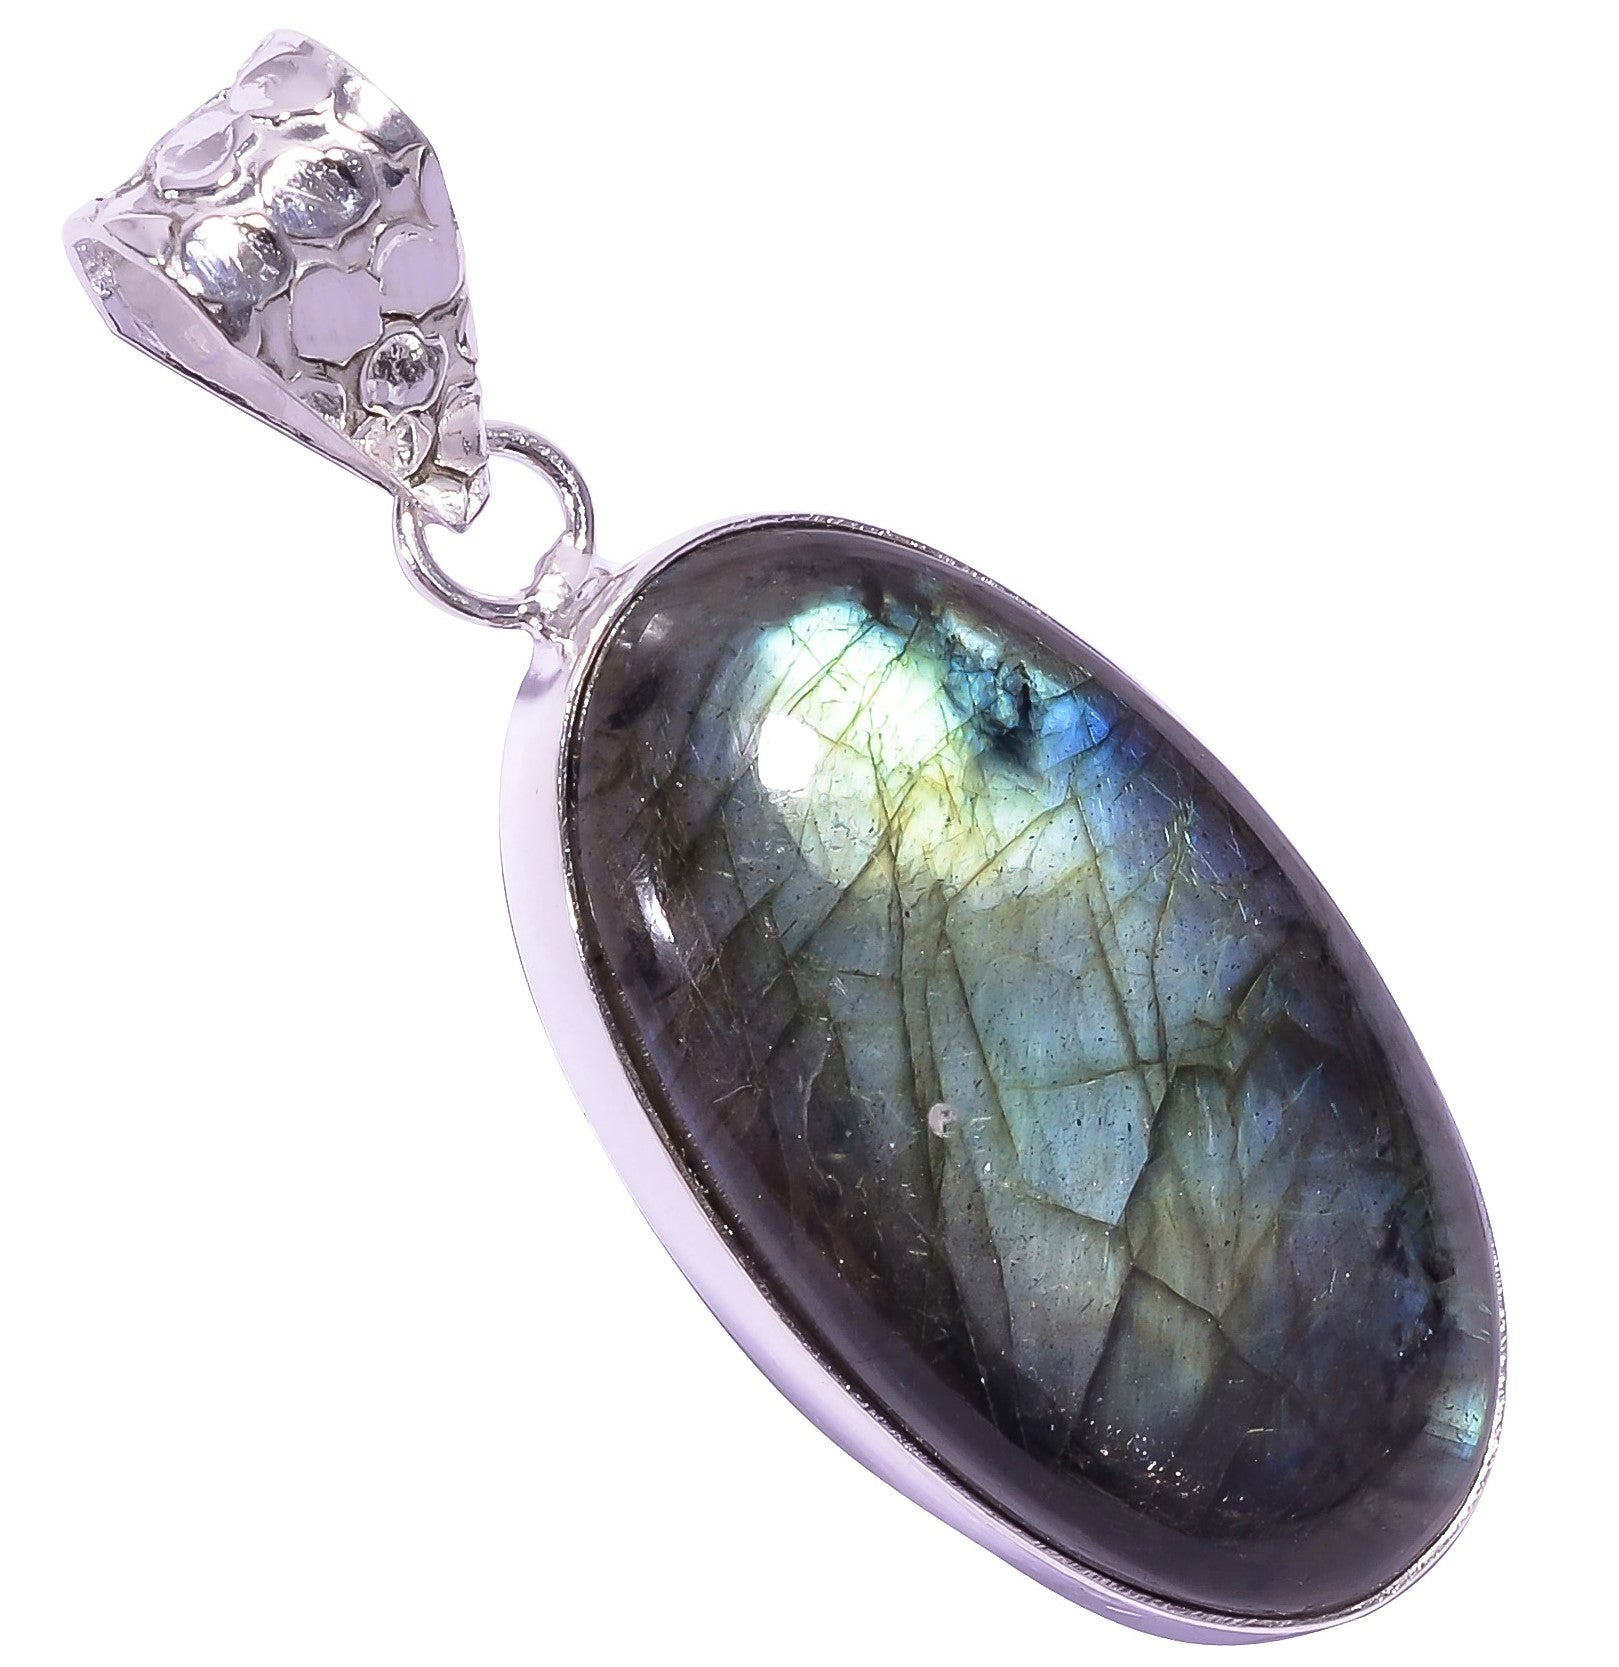 Ethnic Style Sterling Silver Overlay Labradorite Gemstone Pendant, Natural Stone Handmade Necklace for Women with Rhodium Plated Chain, NLG-1609